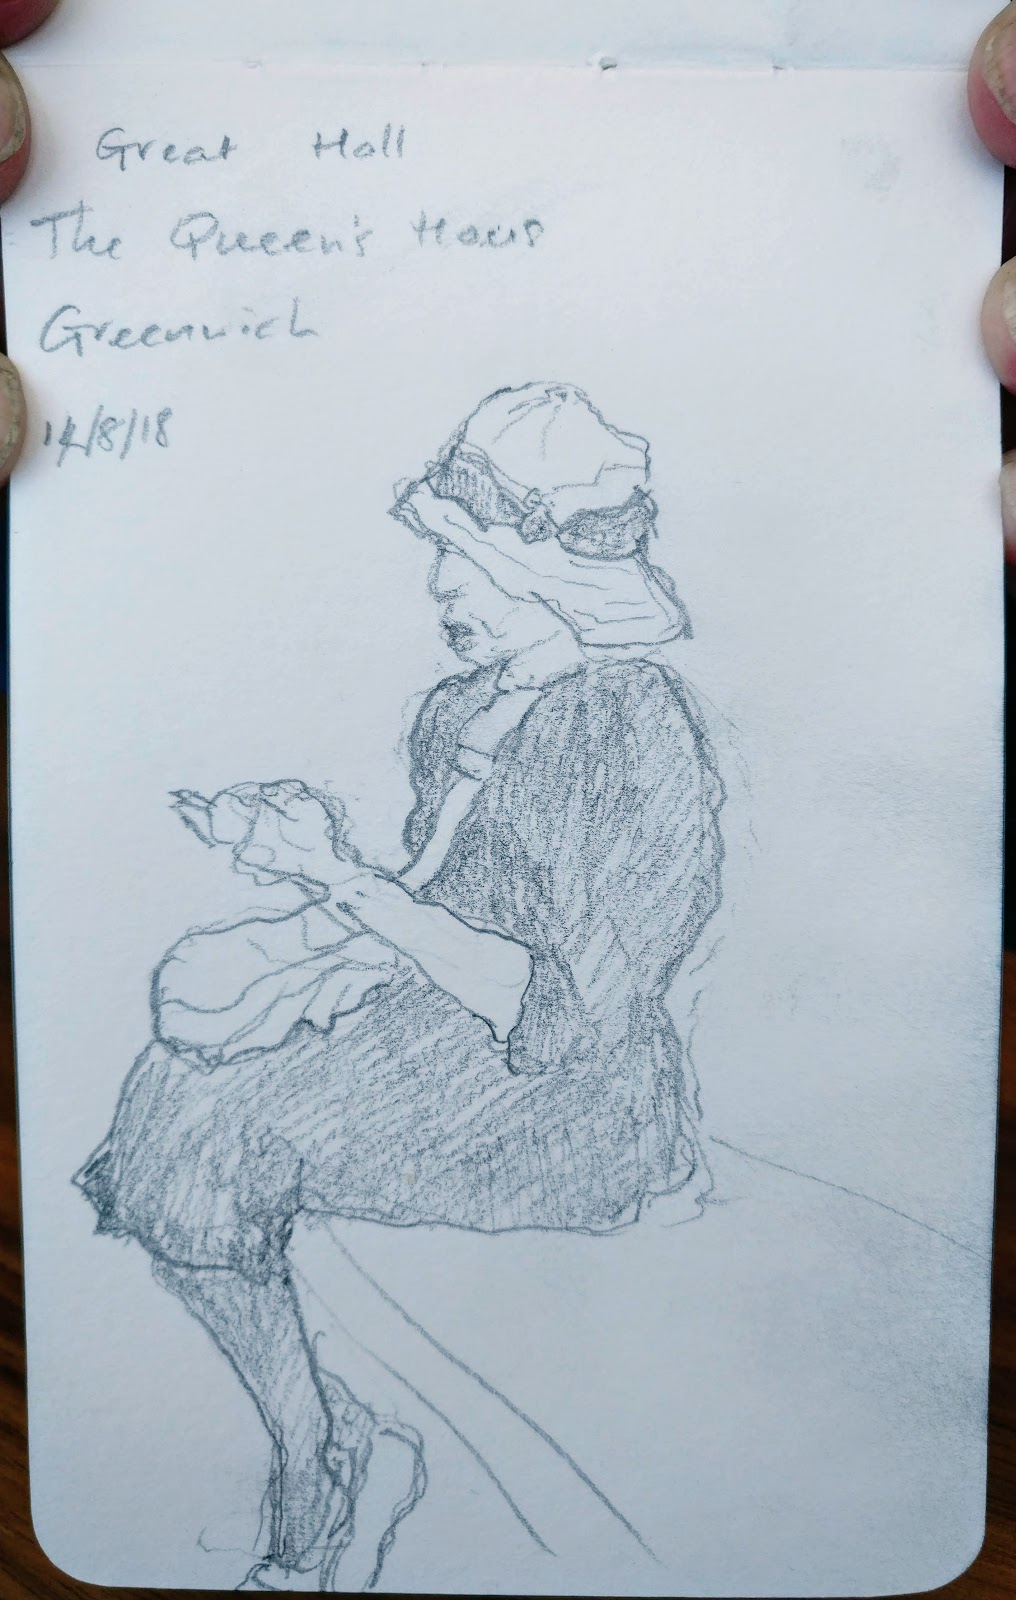 margaret-cooter: Drawing Tuesday - Maritime Museum